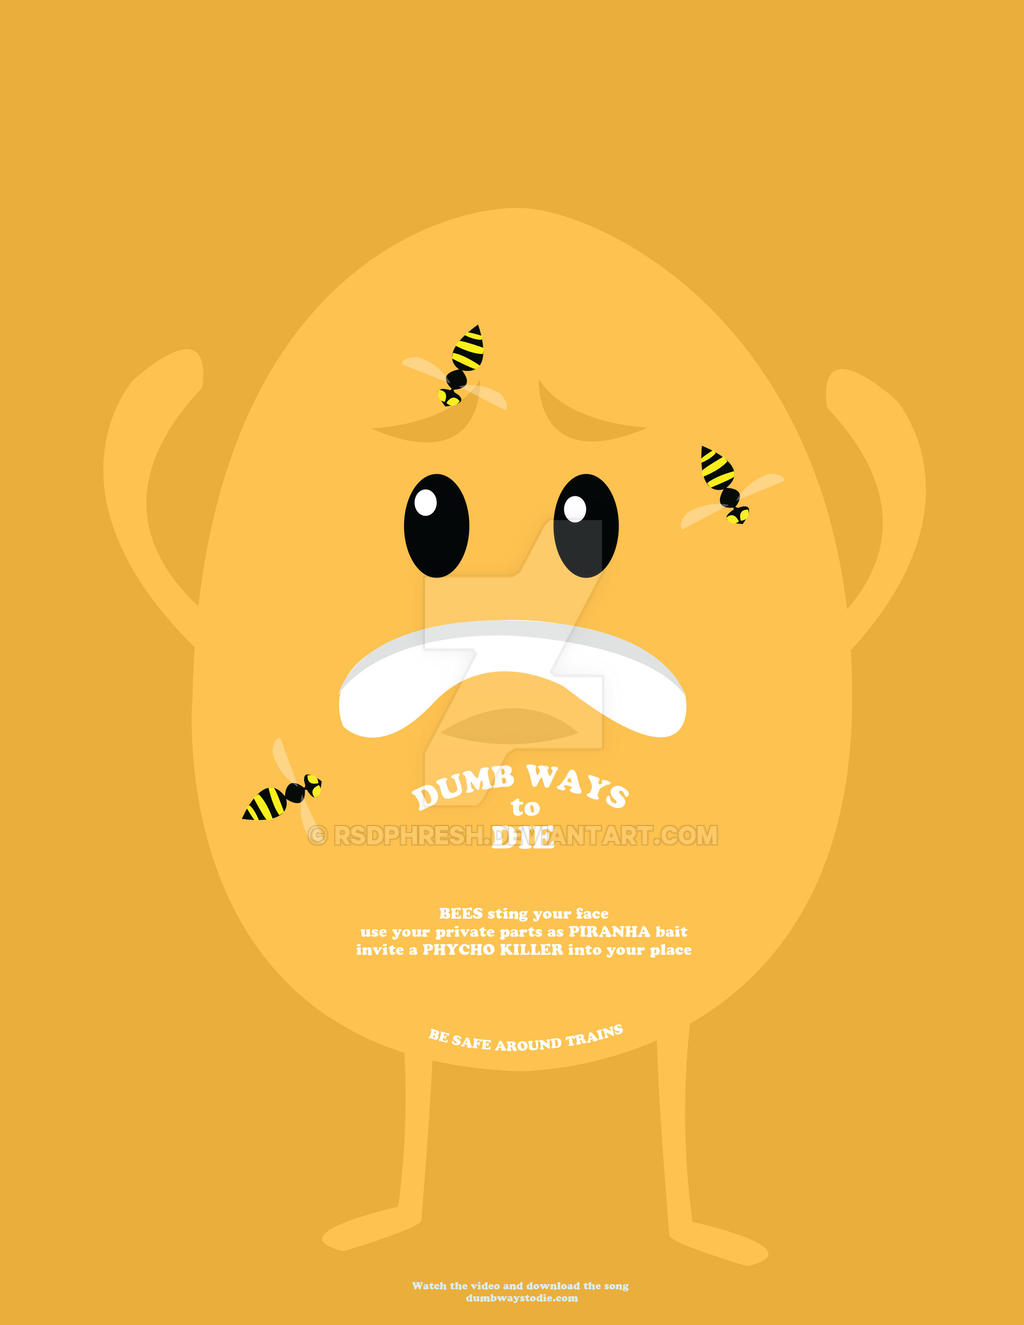 Image currently unavailable. Go to www.generator.doeshack.com and choose Dumb Ways to Die 2: The Games image, you will be redirect to Dumb Ways to Die 2: The Games Generator site.